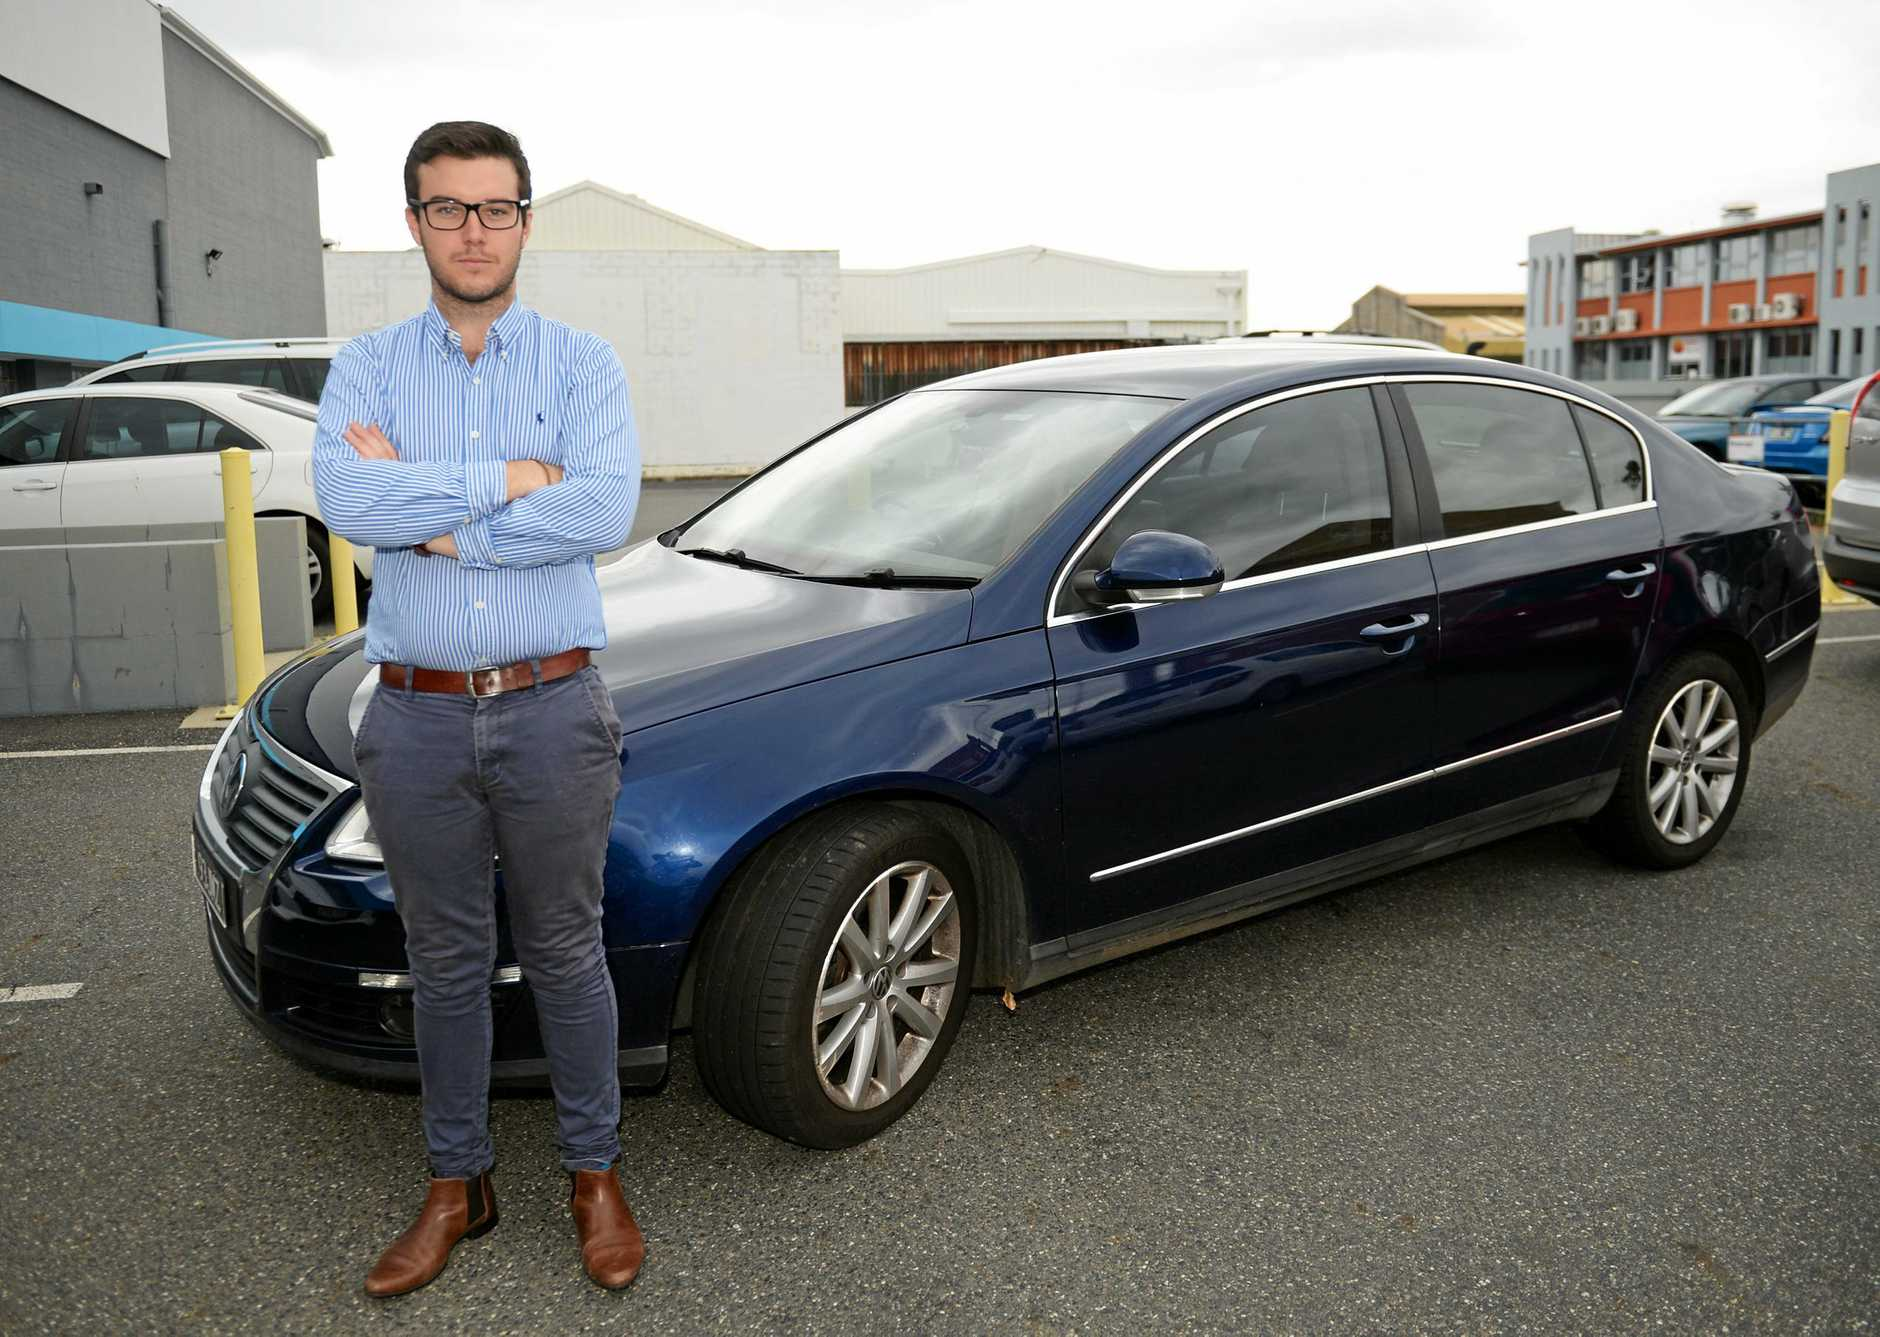 James Allen with the second-hand car he bought from disgraced former car dealer Glen David Mayer.